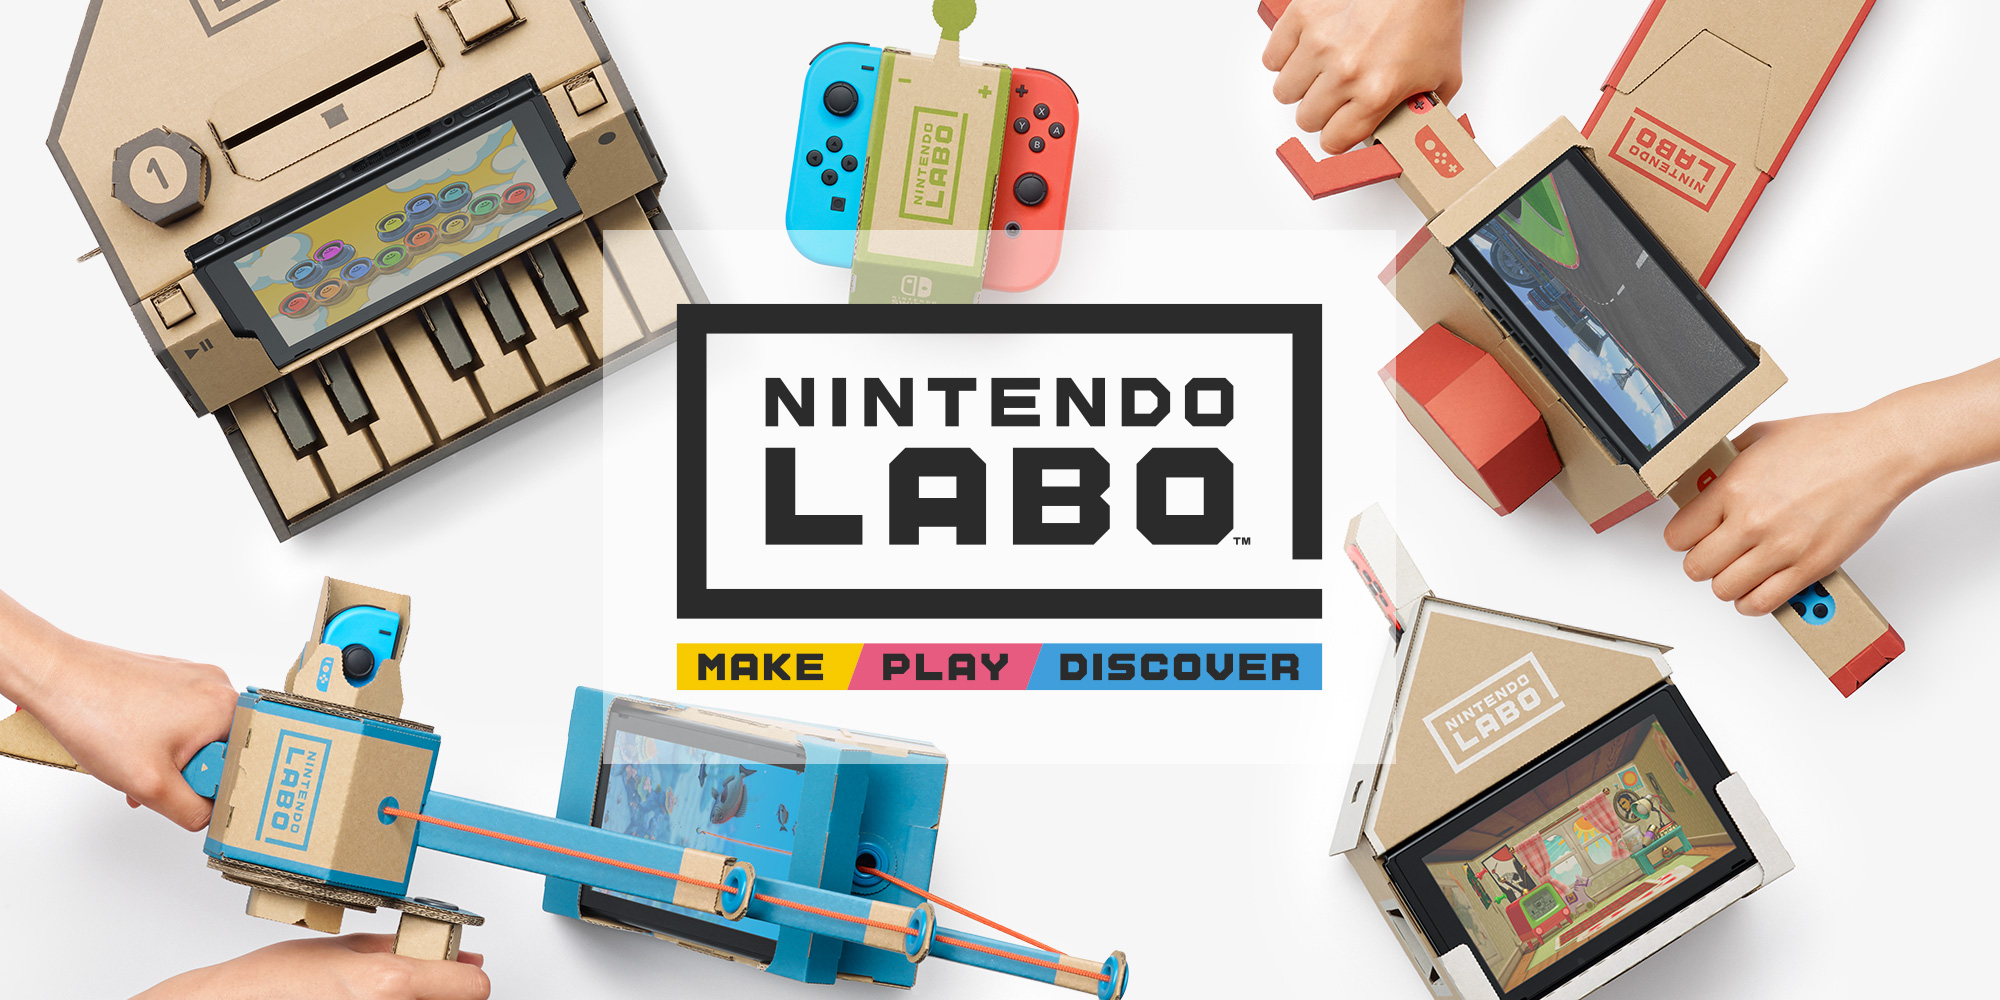 Nintendo Labo Potentially Discontinued